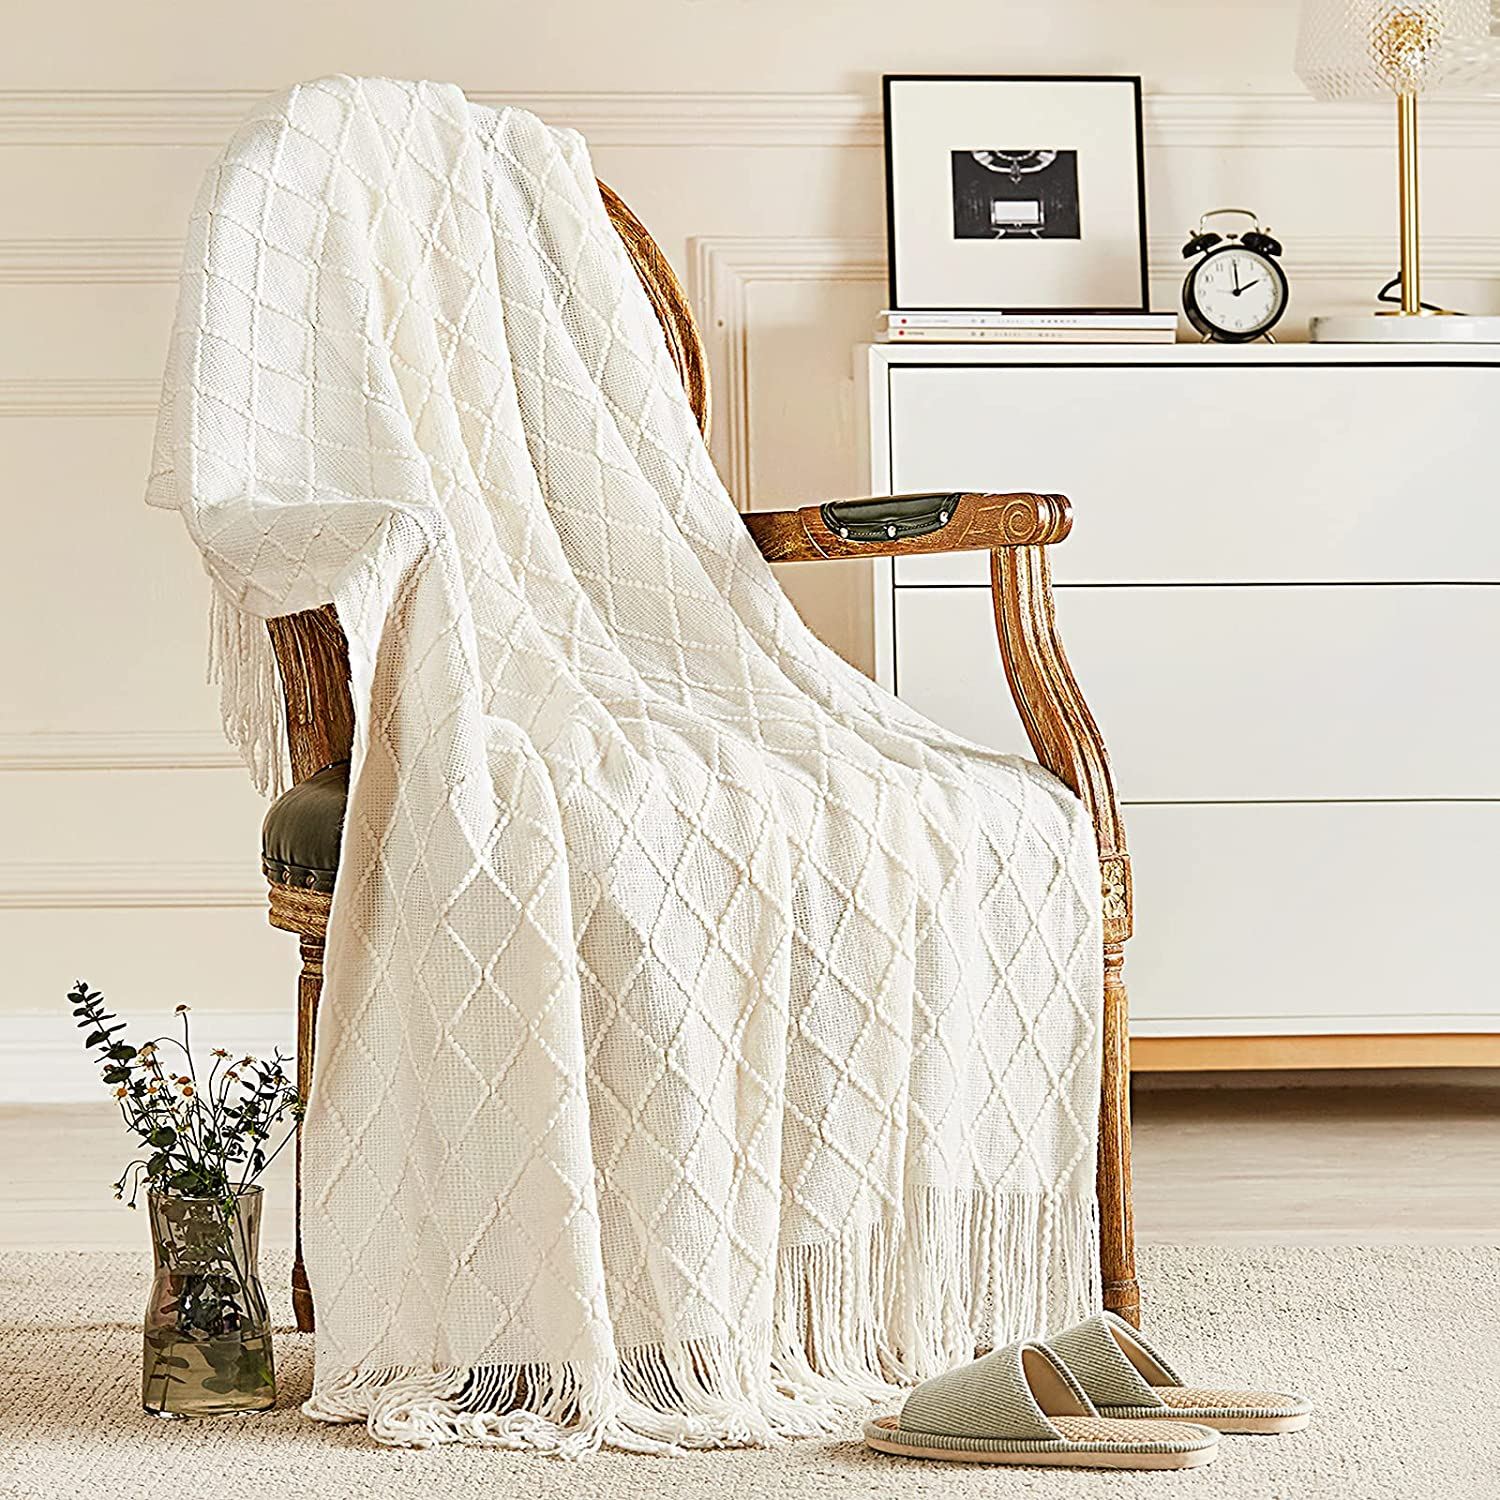 Inhand Knitted Throw Blankets shopping for New Orleans Mall Couch Cozy Bed and Soft Knit